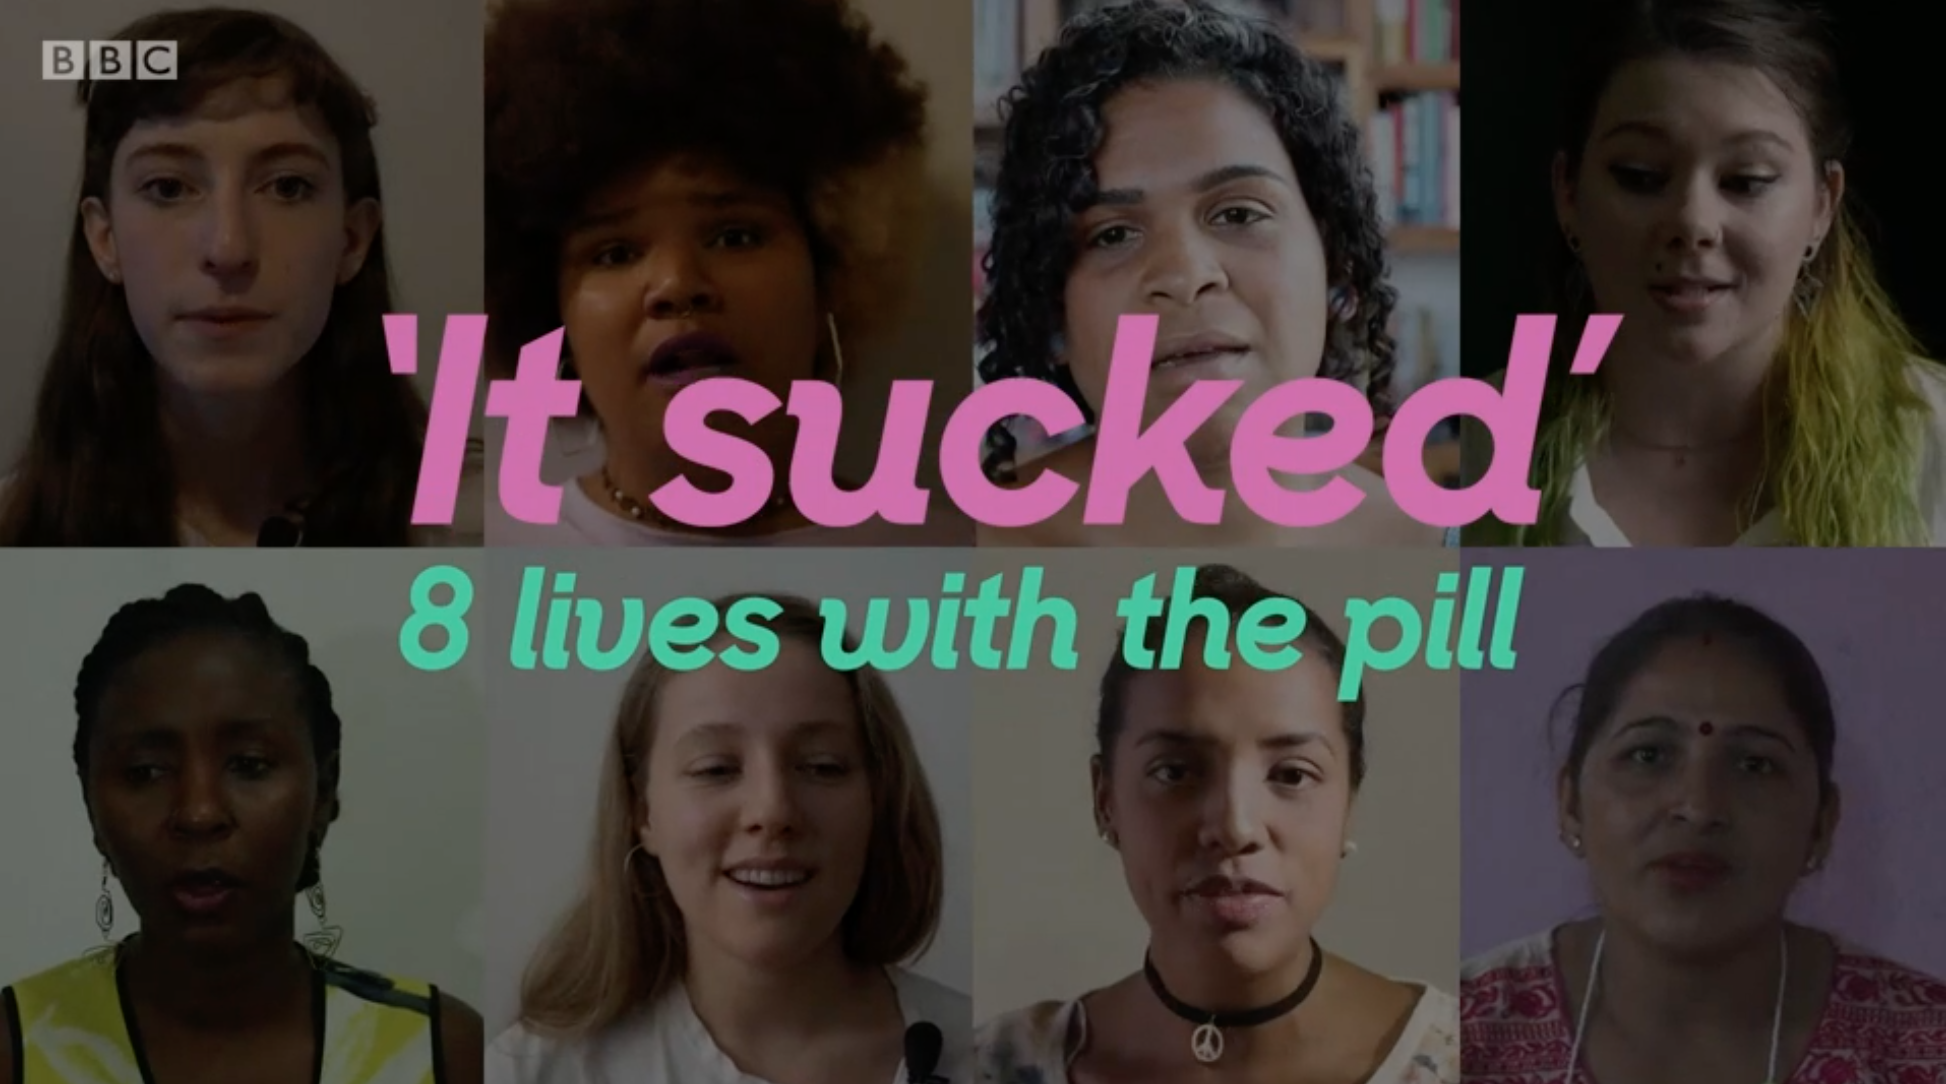 It Sucked: 8 Lives with the Pill